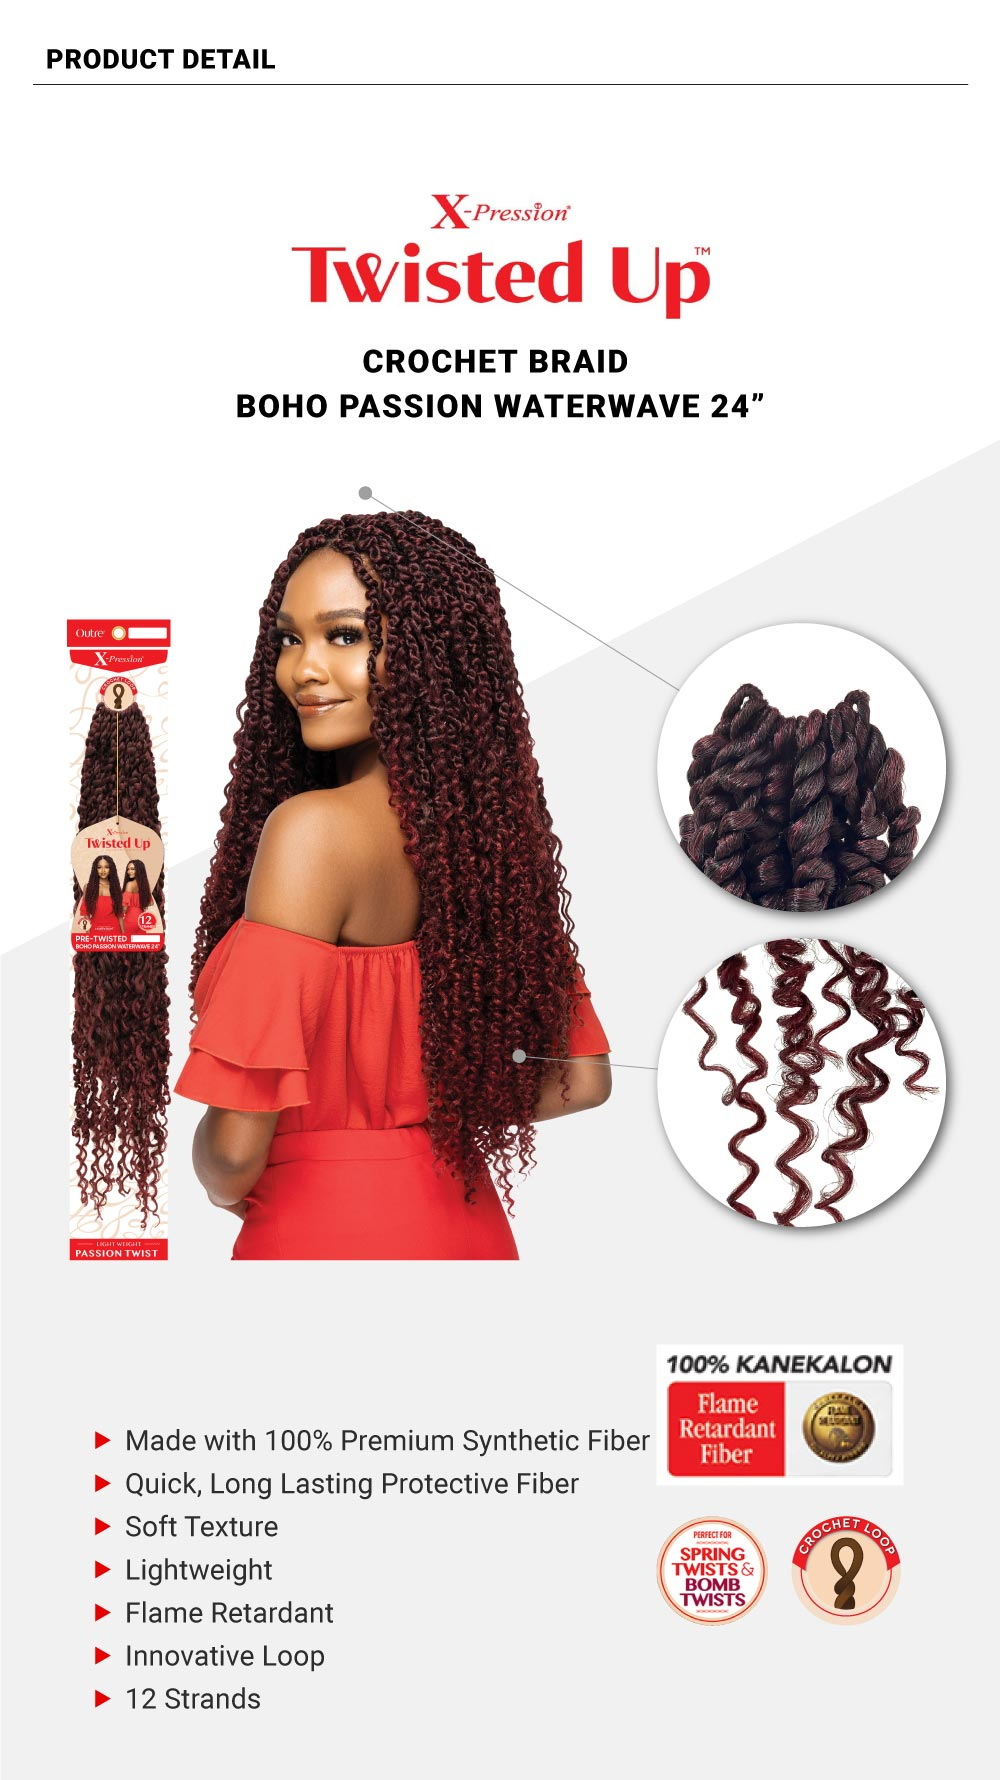 X-PRESSION-TWISTED-UP-BOHO-PASSION-WATERWAVE-24INCH